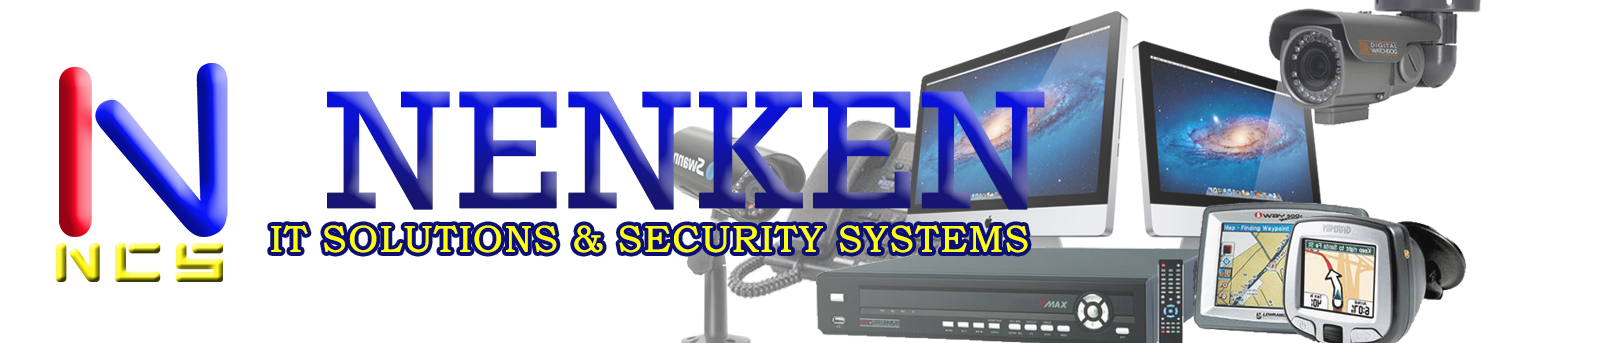 Nenken Computer Solutions and Security Systems